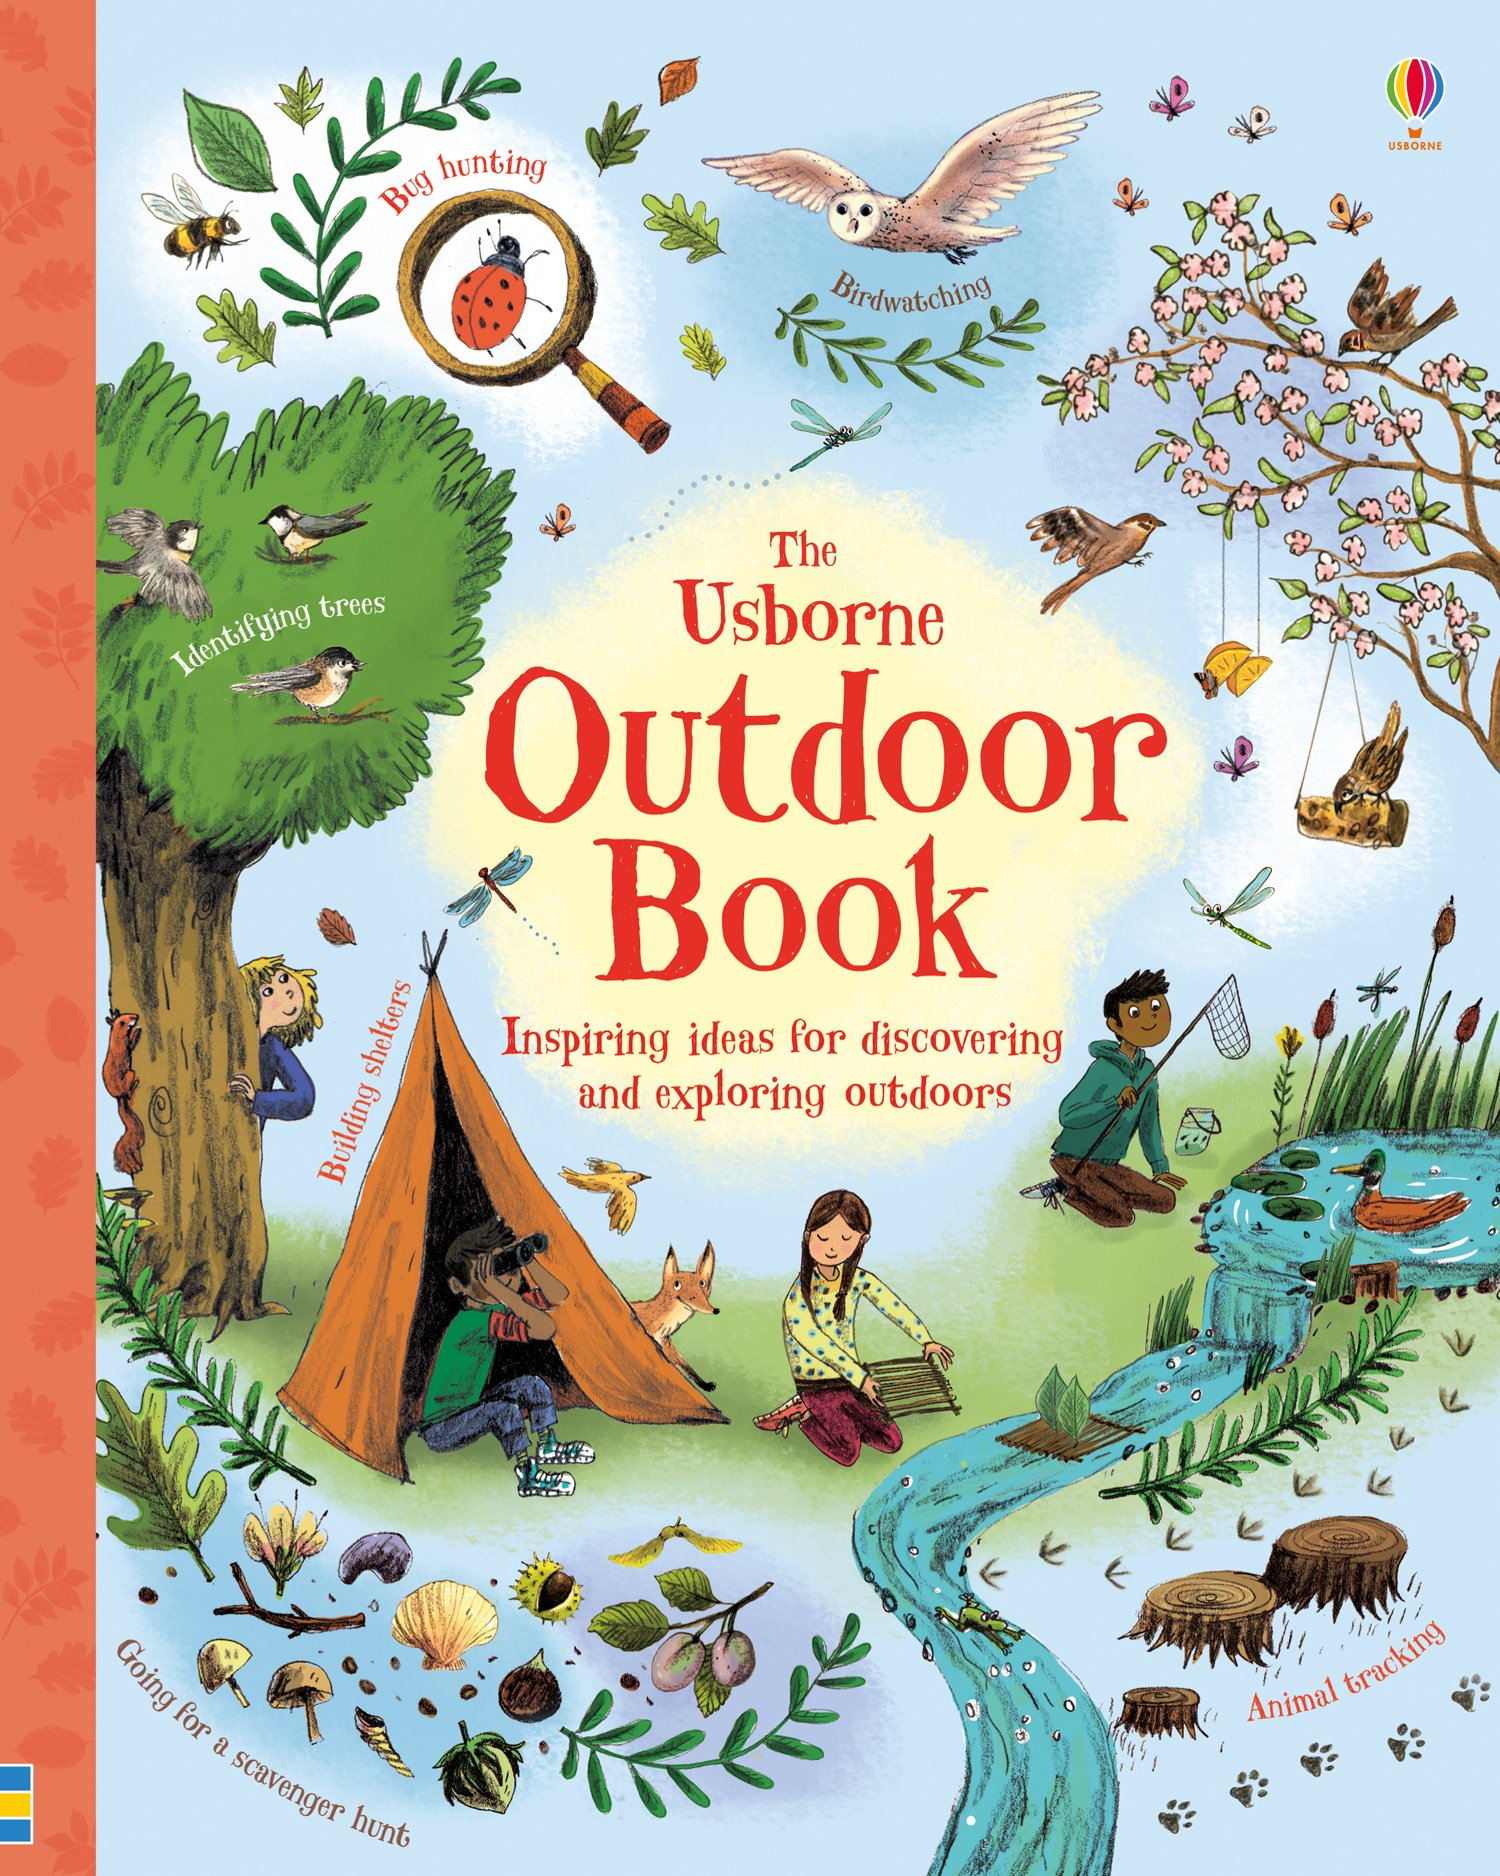 The Outdoor Book I Top 20 Activity Books for Children I Dublin Family Programme I What to do with kids in Dublin I Discover Dublin's Playful Side